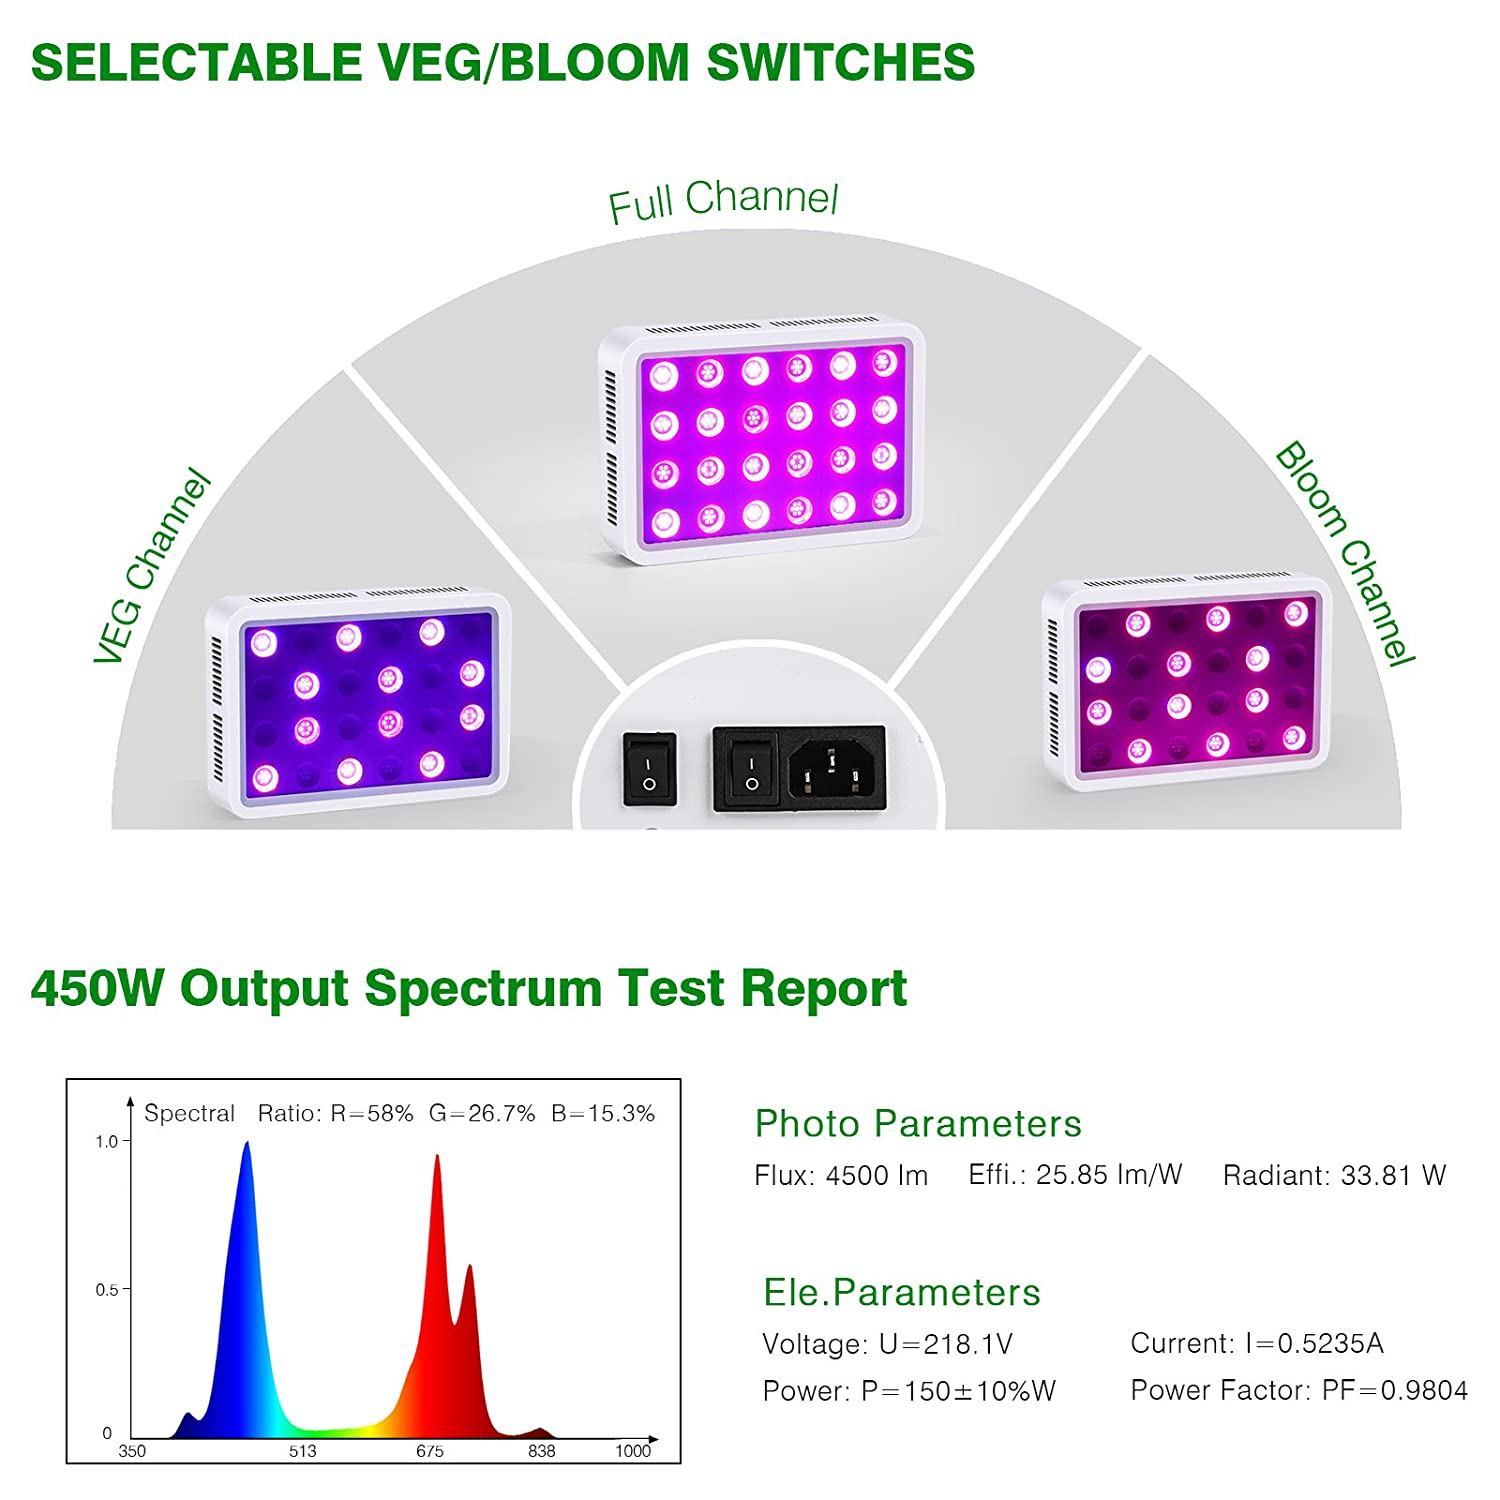 75w Led Grow Lights for Indoor Plants TOPLANET 75w Full Spectrum Light Plant Hanging Grow Light with IR Red Blue Bulbs Grow Lamps Kit for Greenhouse Grow Box Veg Bonsai Plants Seeding Yield